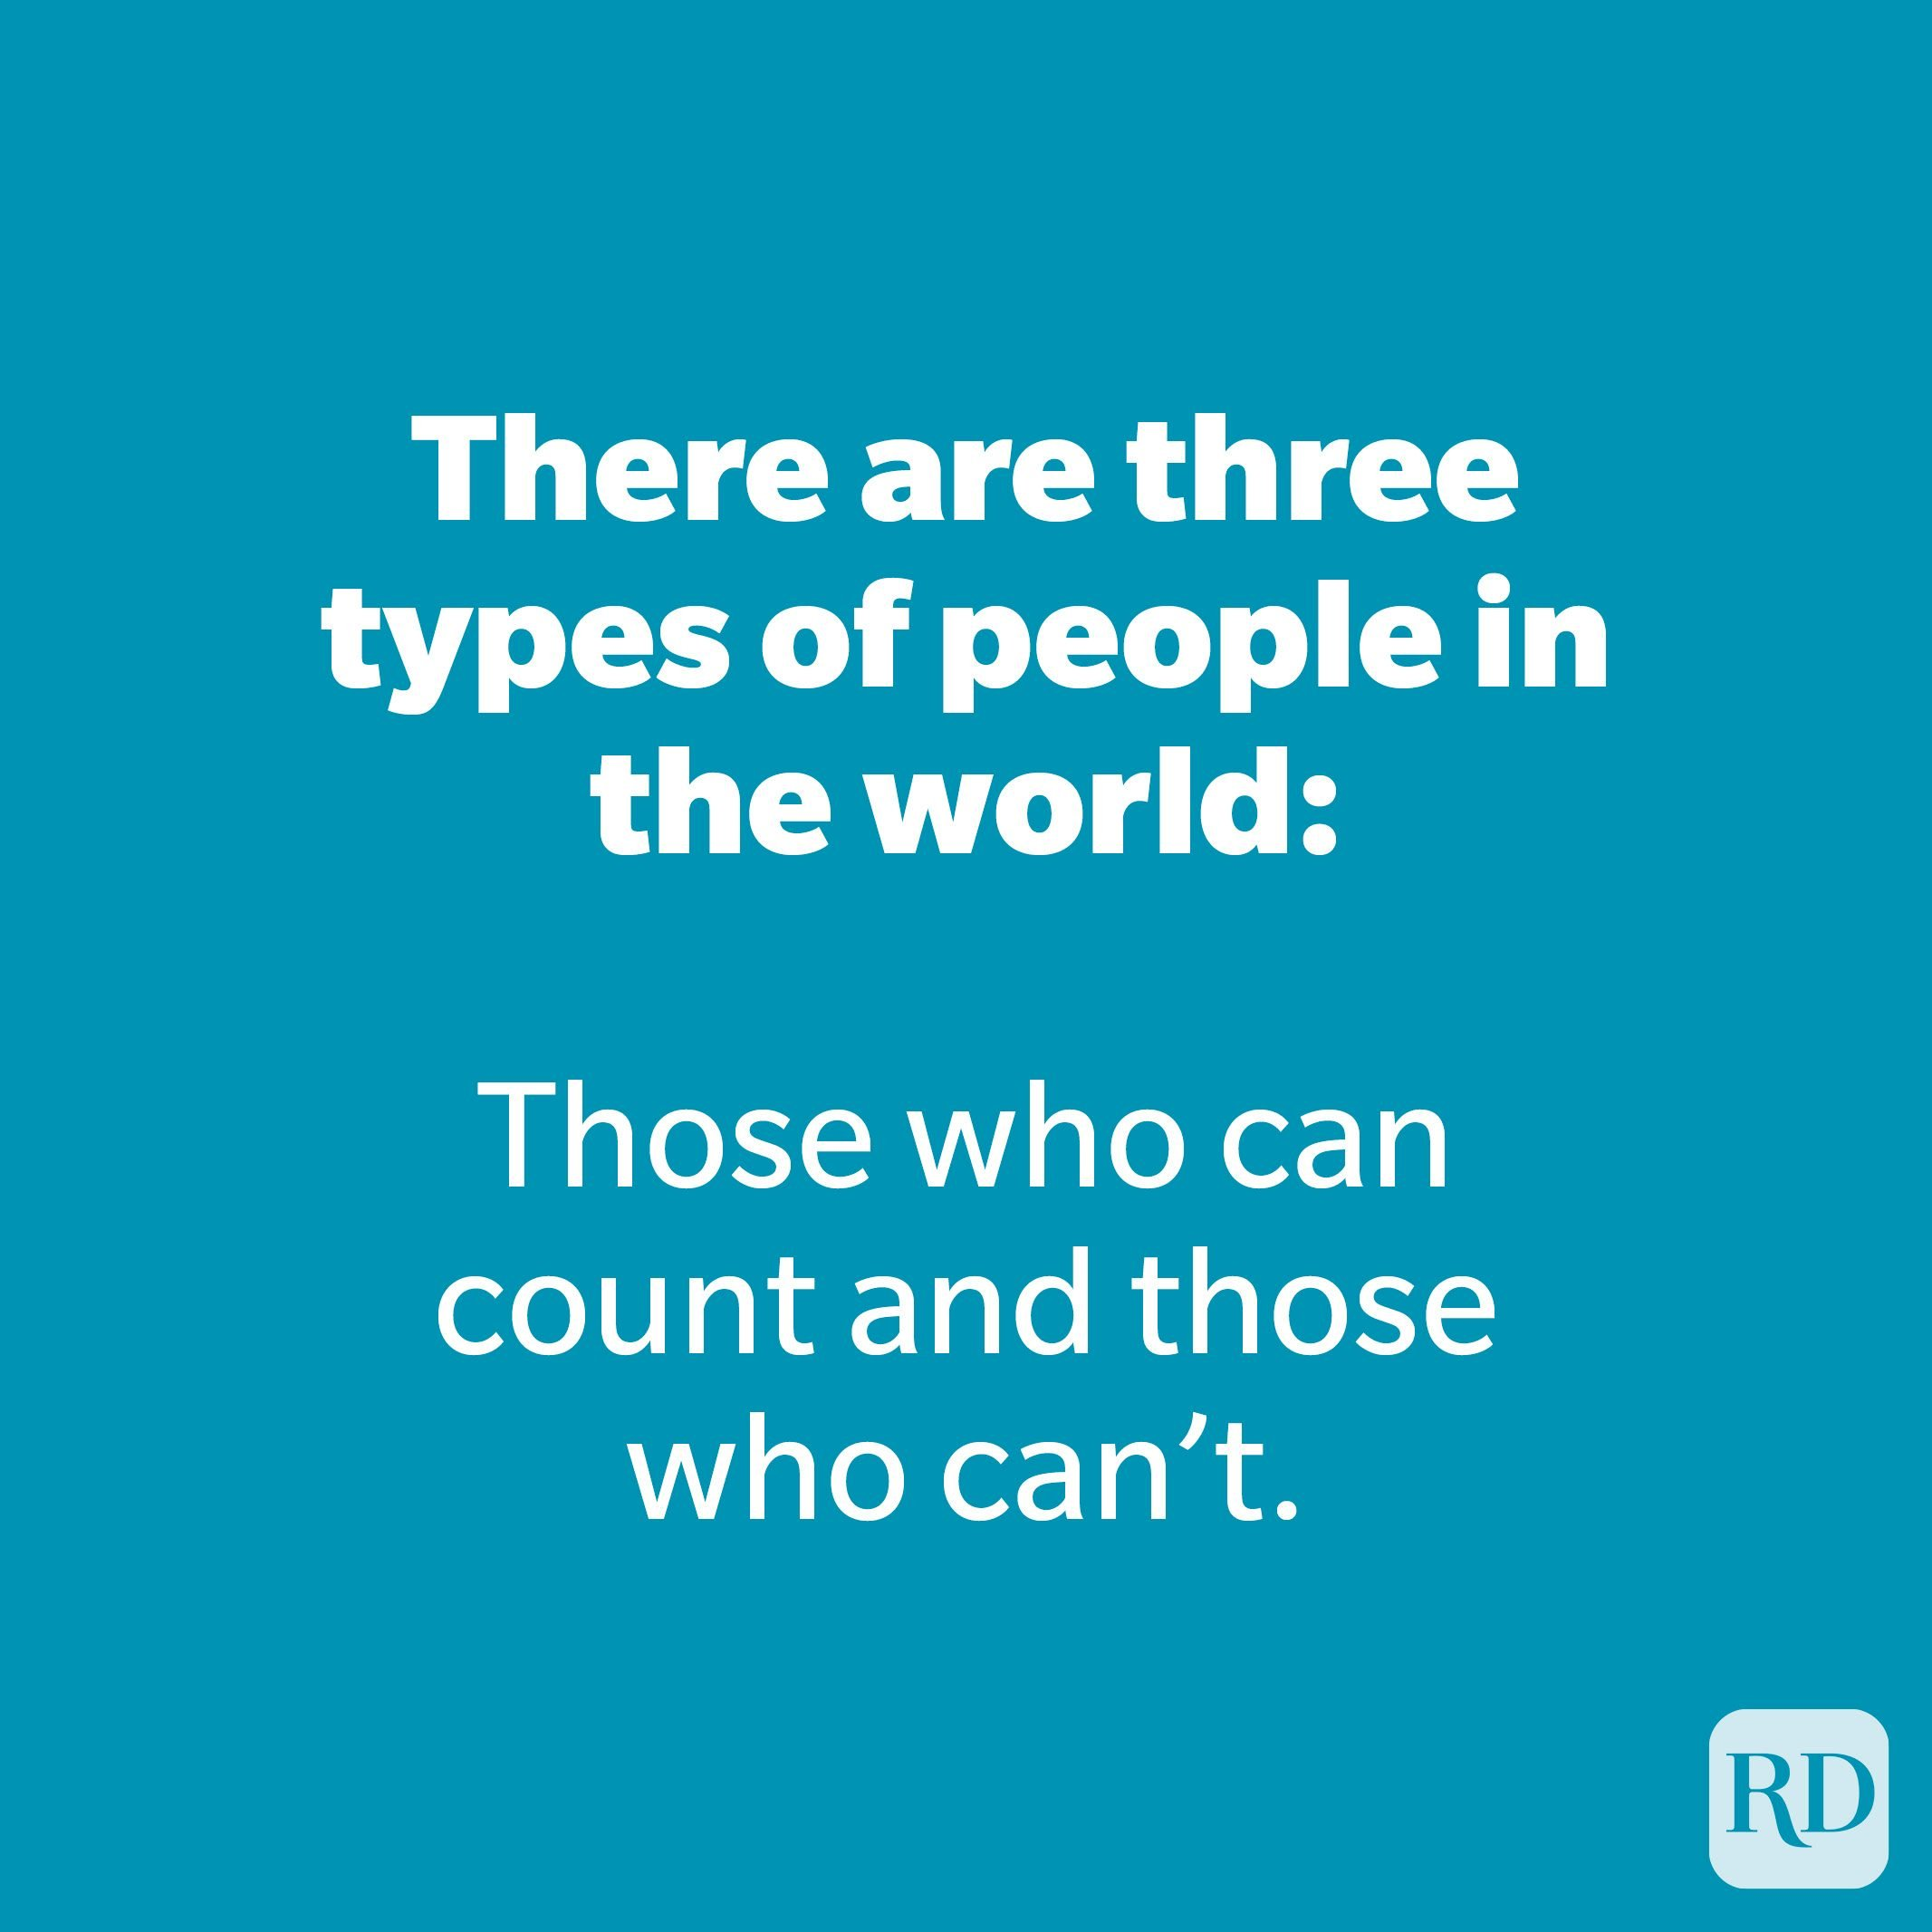 There are three types of people in the world: